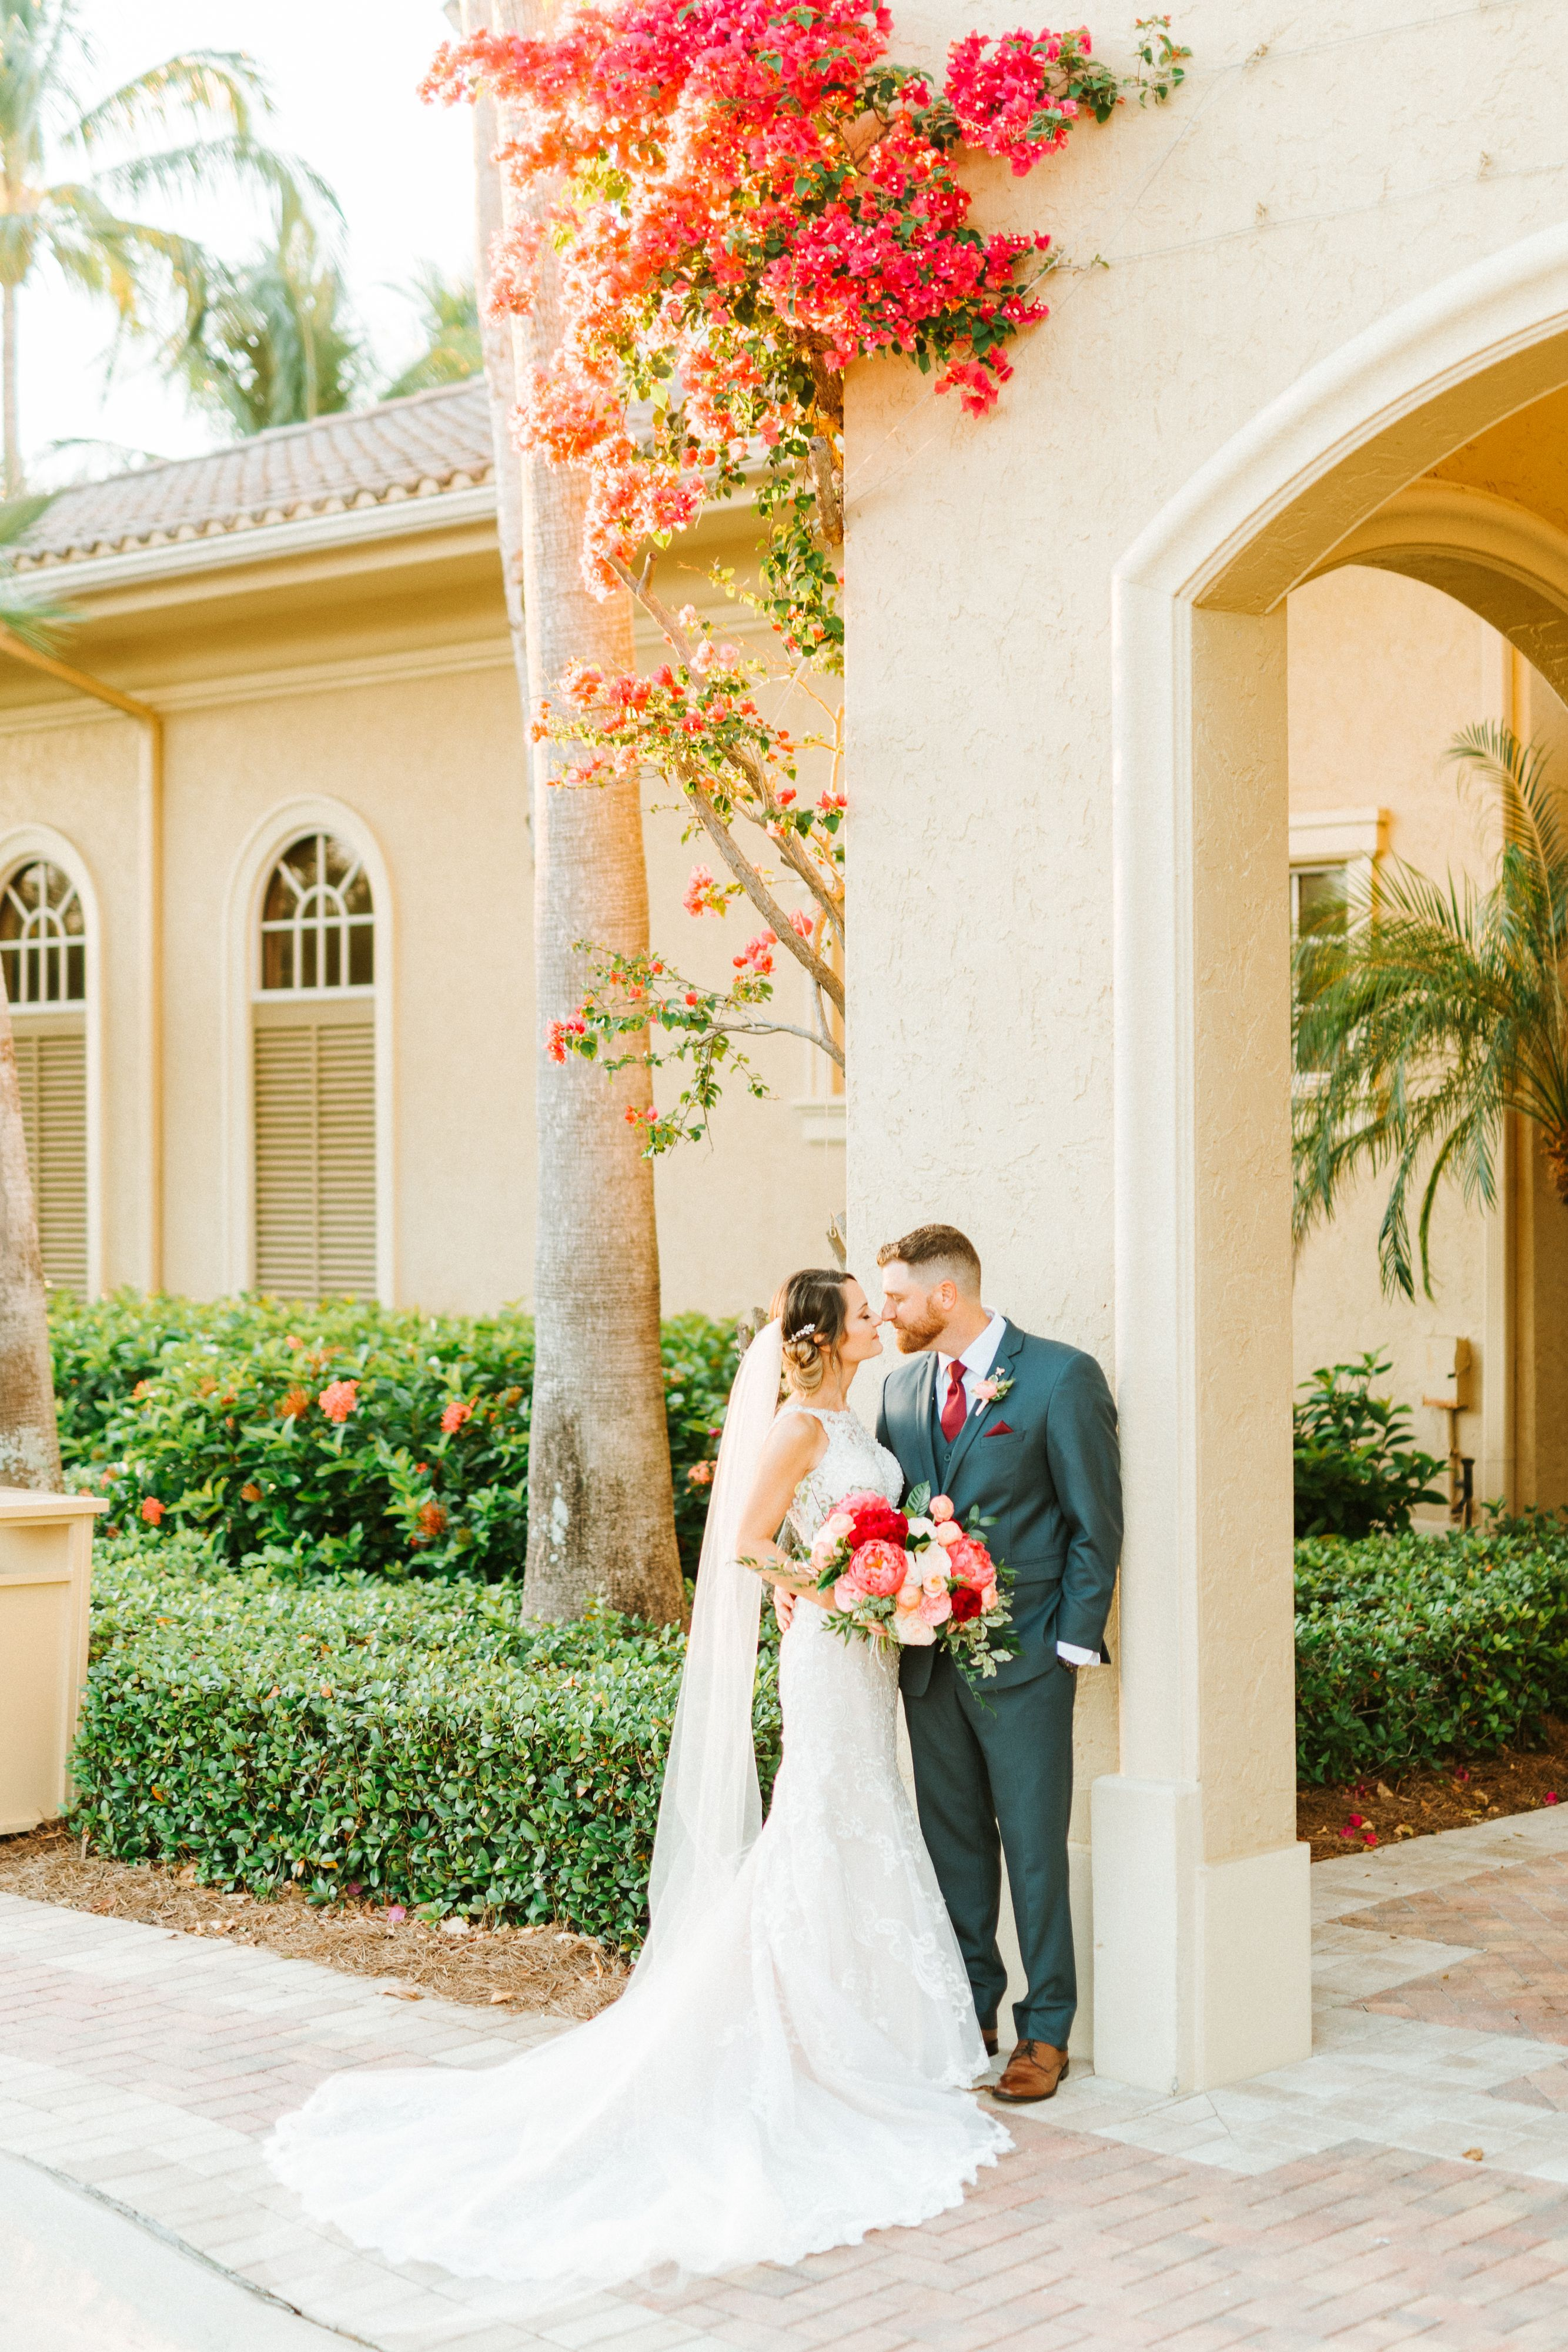 46+ Wedding packages naples florida info